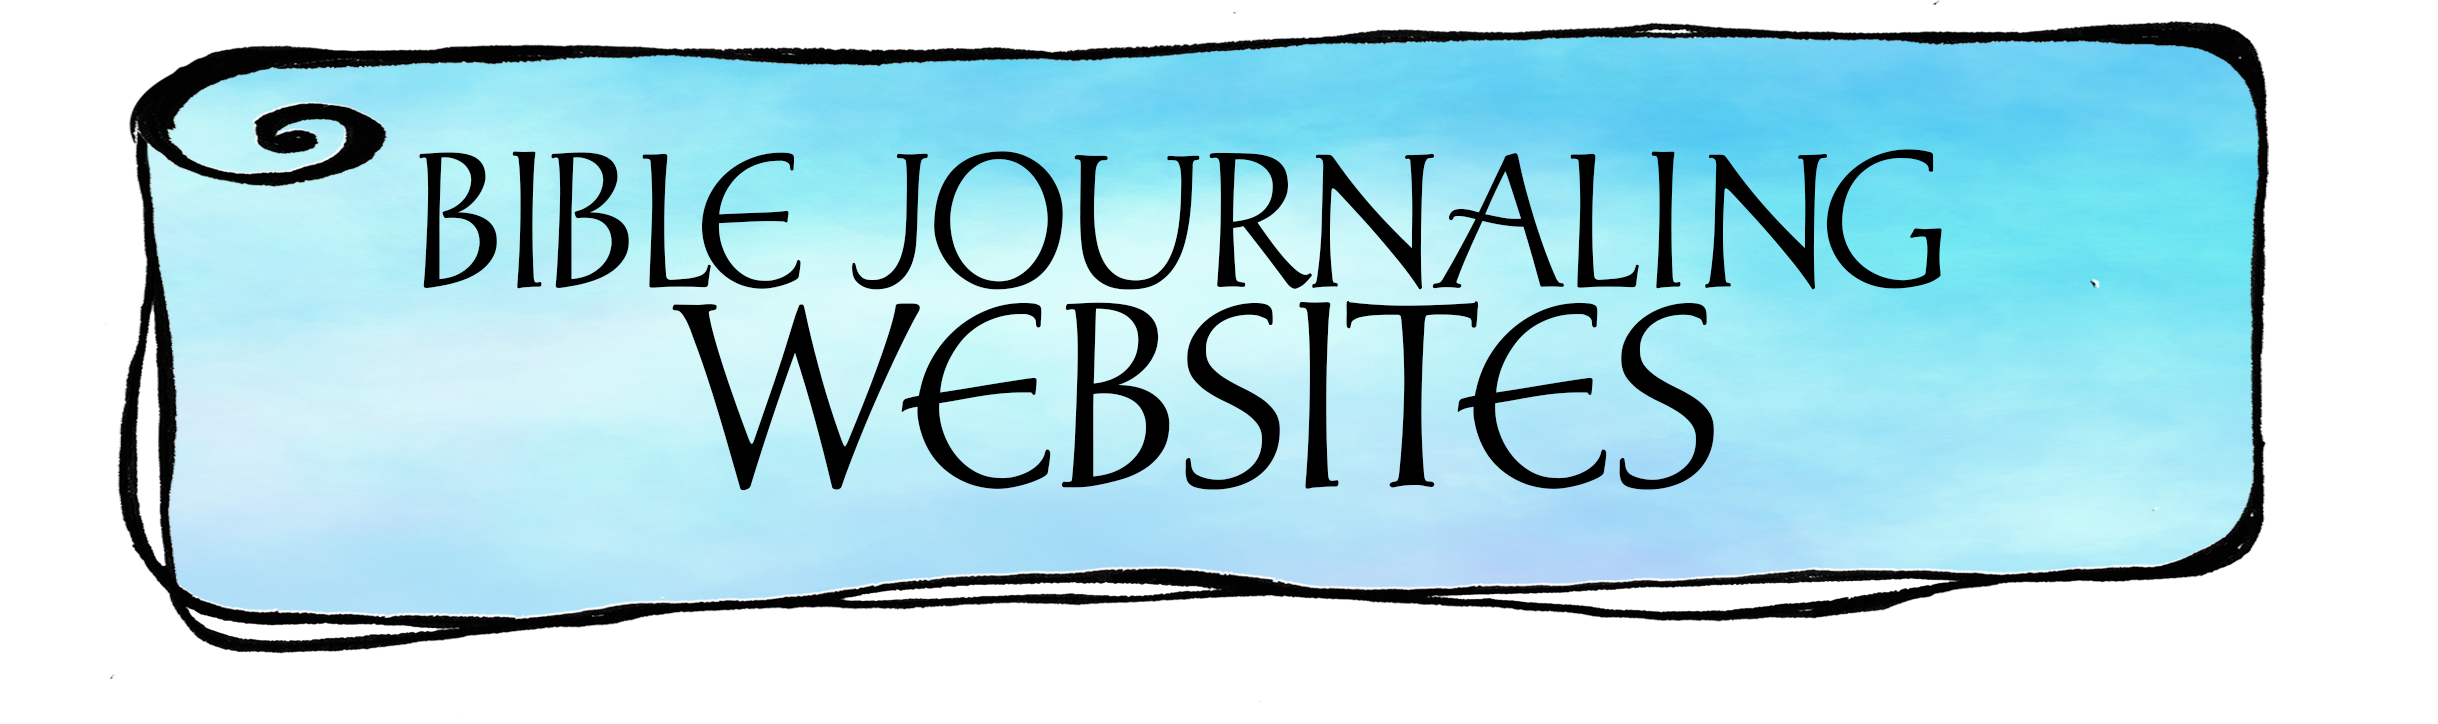 Bible Journaling Websites